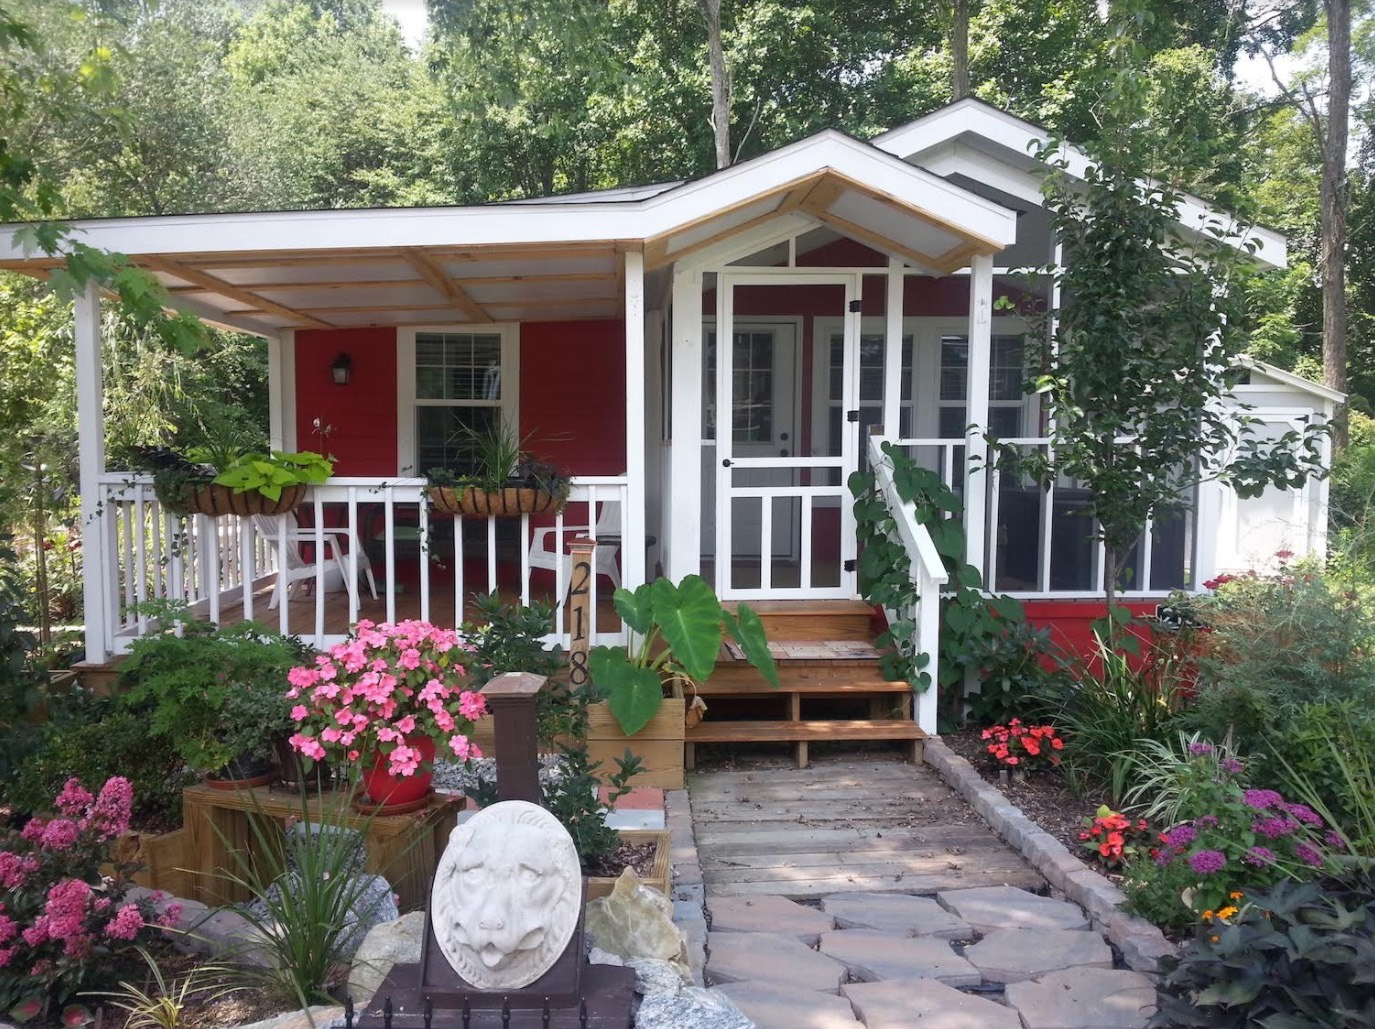 Small House In Flat Rock, Nc For Sale